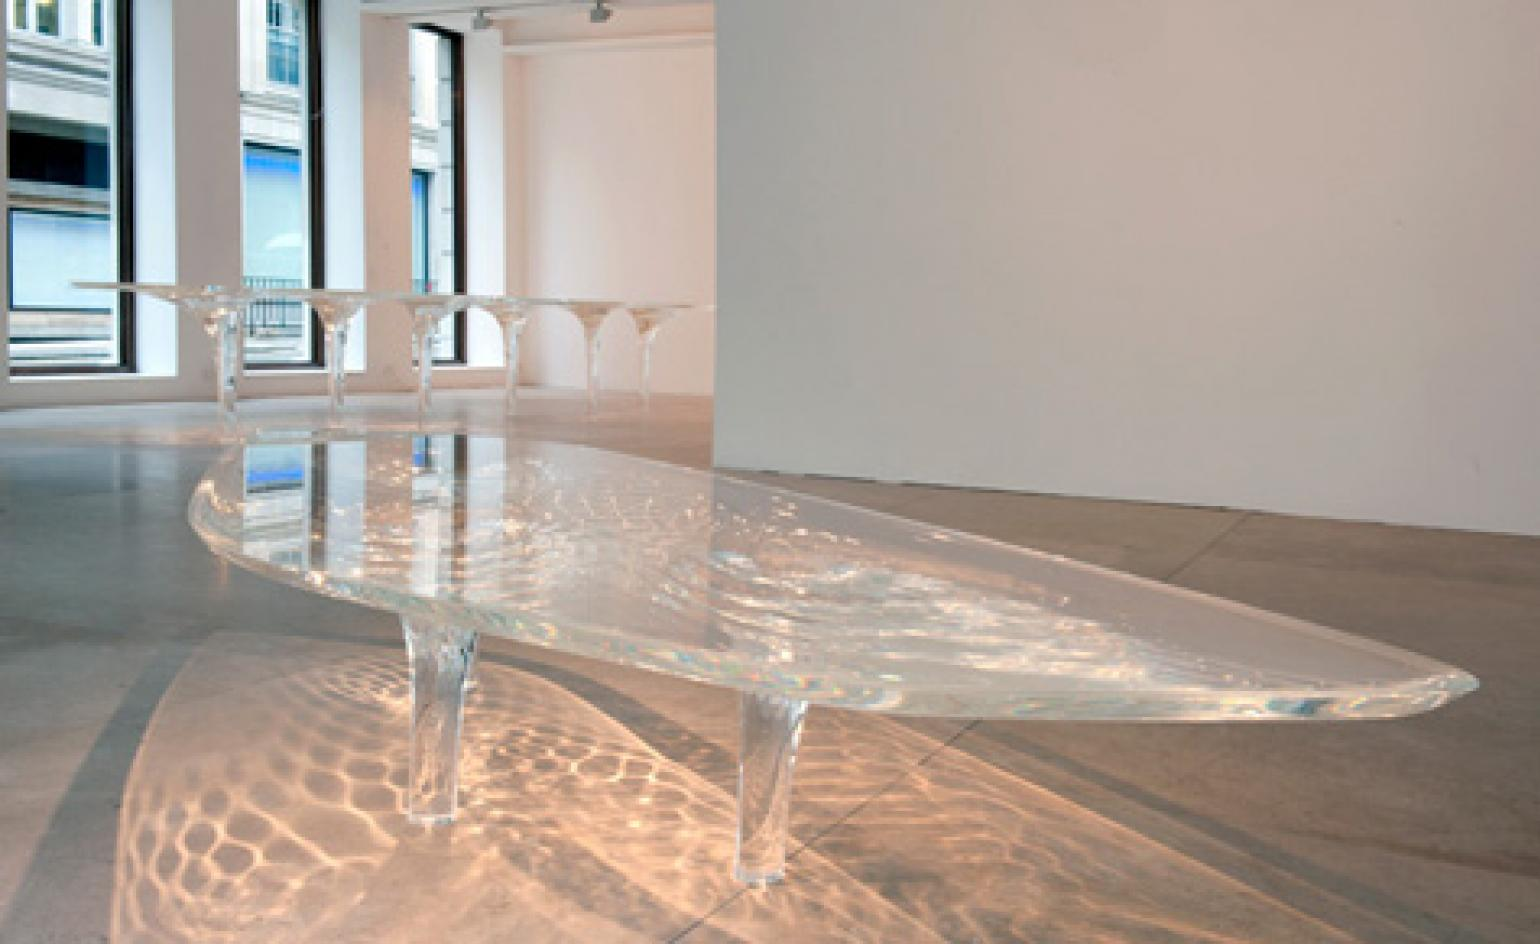 Liquid Glacial Tables By Zaha Hadid At David Gill